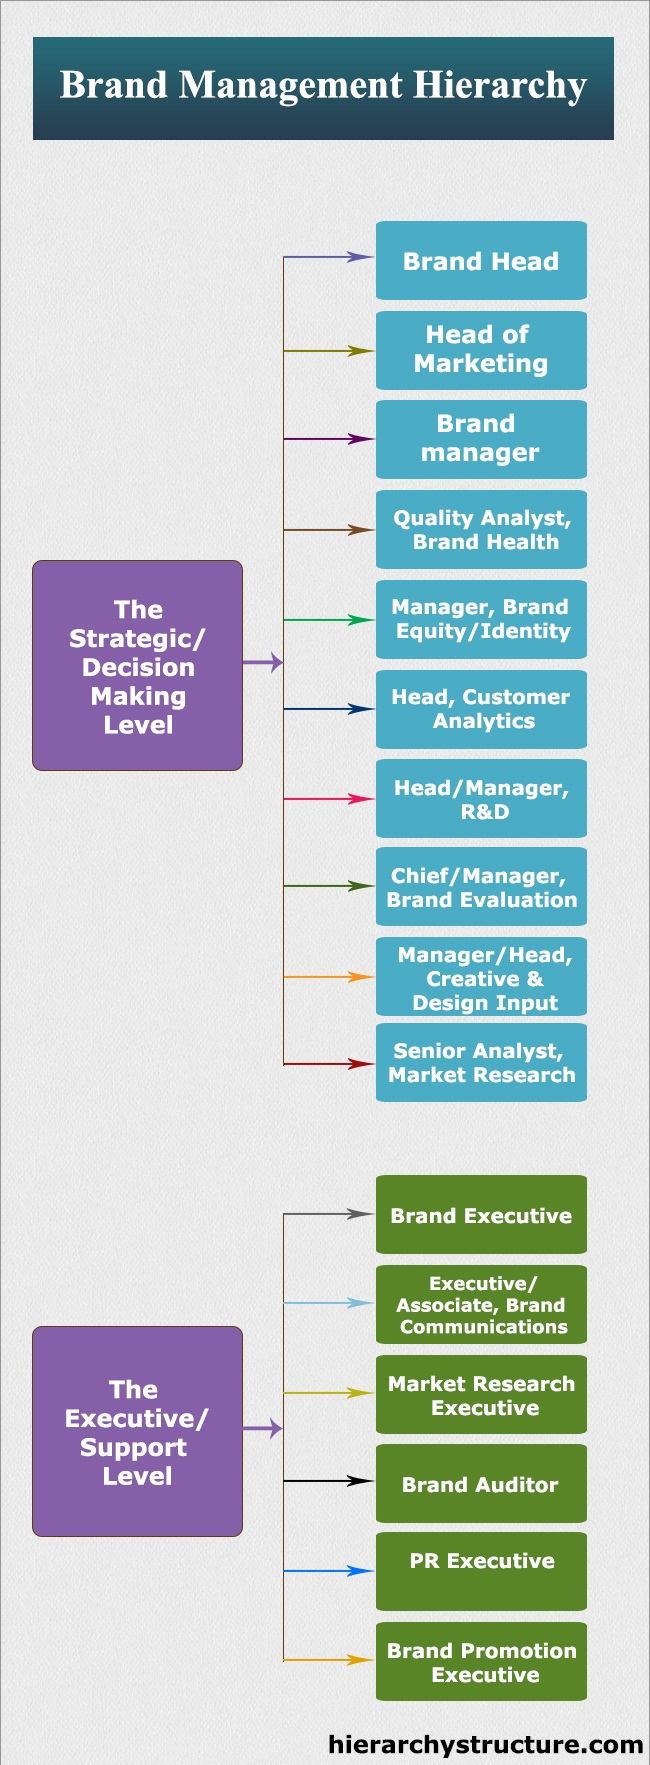 Brand Management Hierarchy